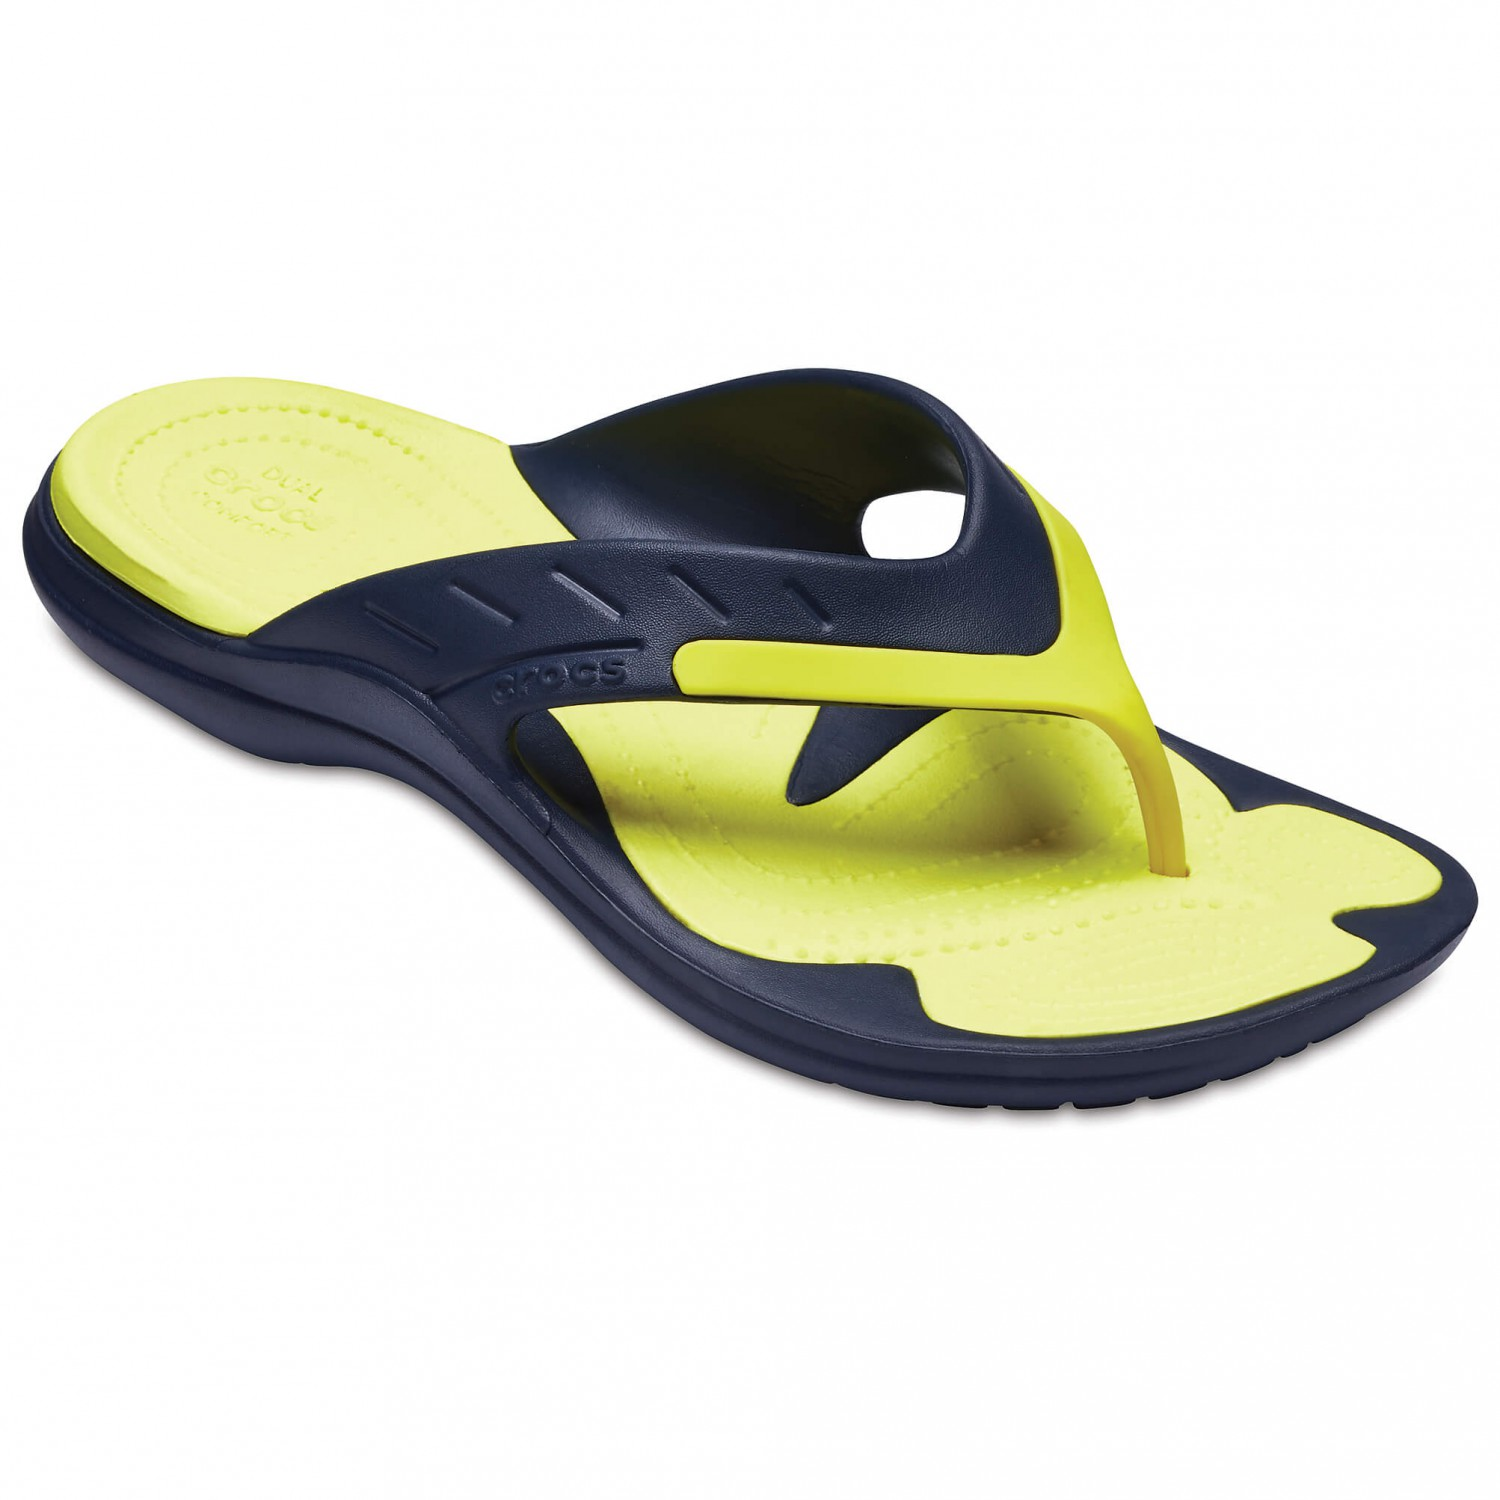 c36880526cb Crocs Modi Sport Flip - Sandals | Buy online | Alpinetrek.co.uk